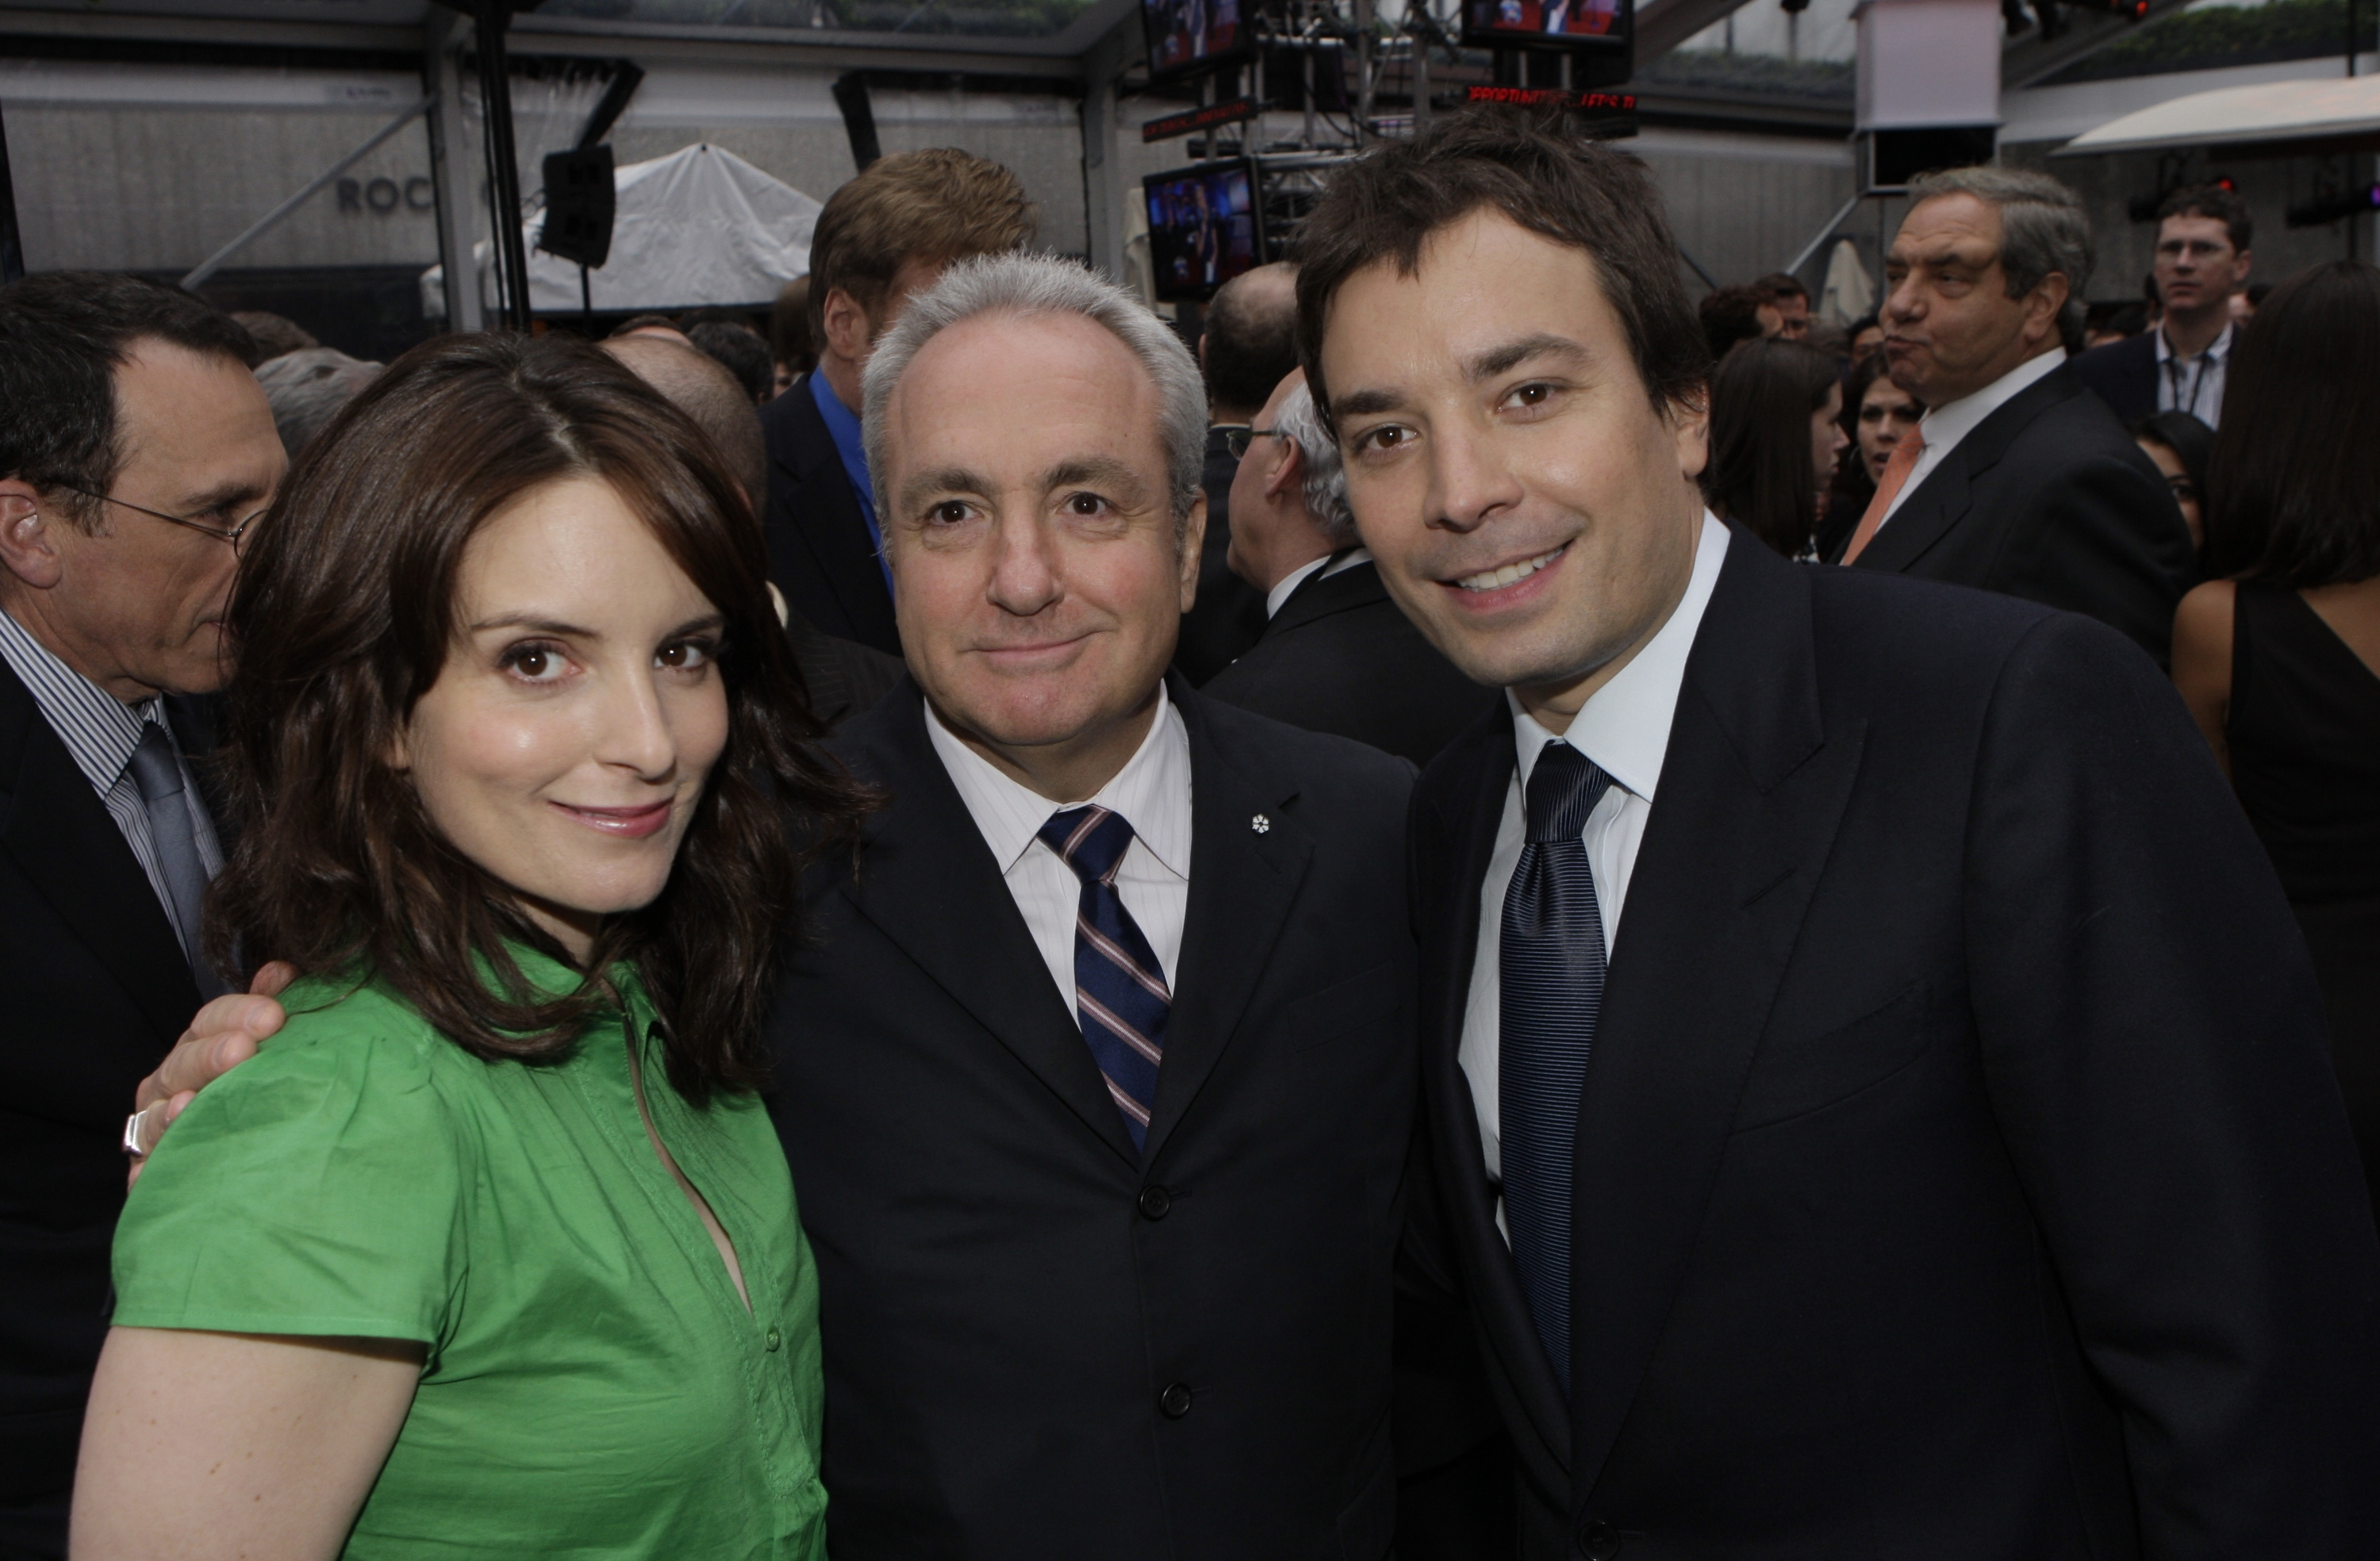 Tina Fey, Lorne Michaels and Jimmy Fallon attend the NBC Universal Experience party at Rockefeller Center in New York on May 12, 2008.